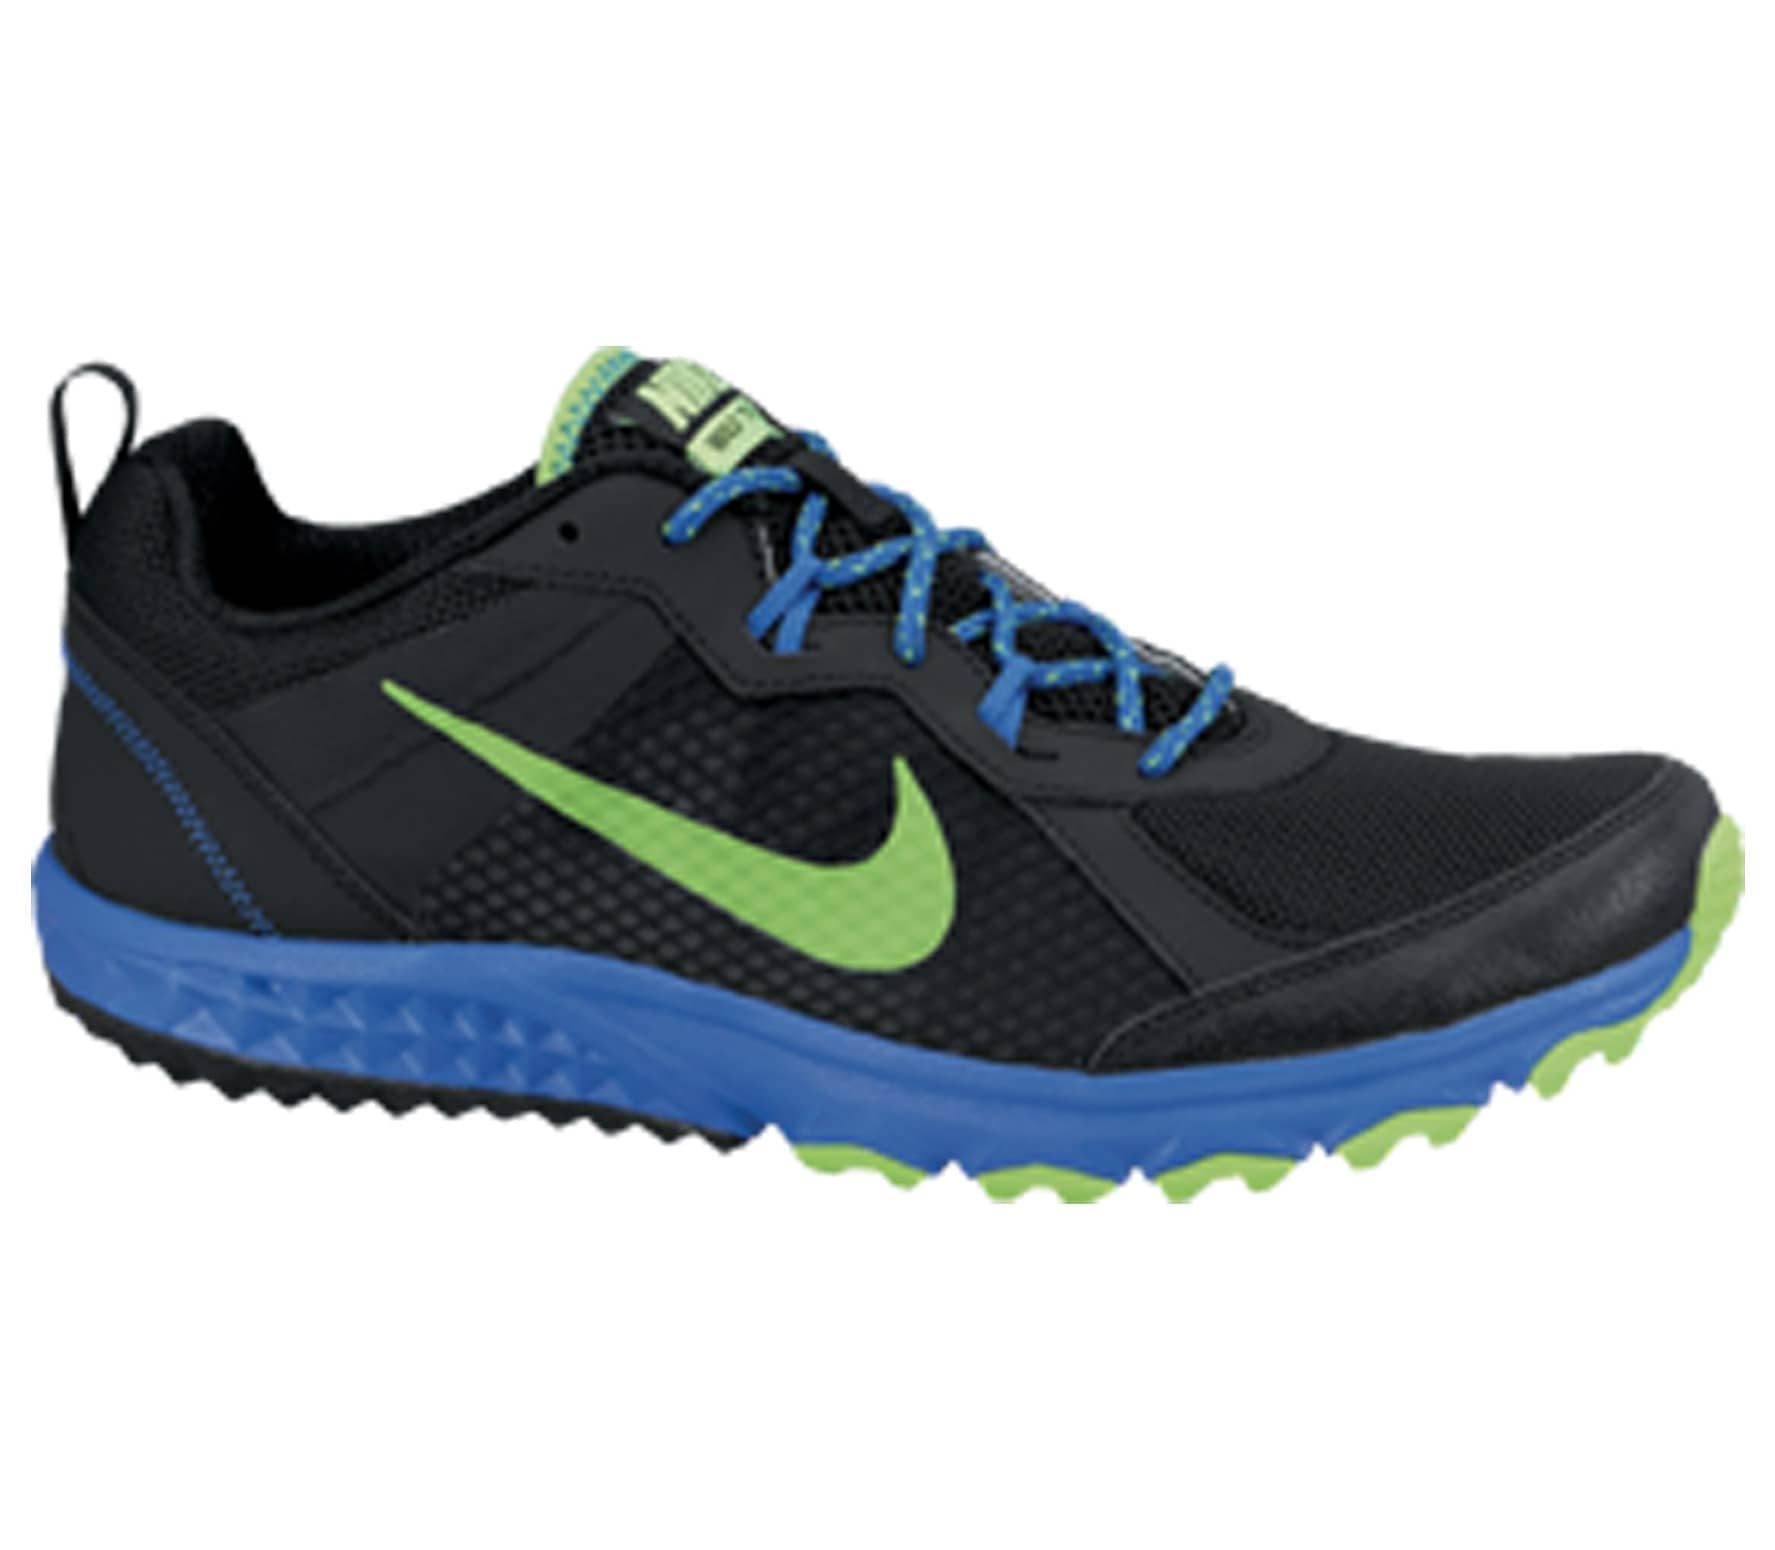 907d9eaca3087 Nike - Wild Trail men s running shoes (black green blue) - buy it at ...